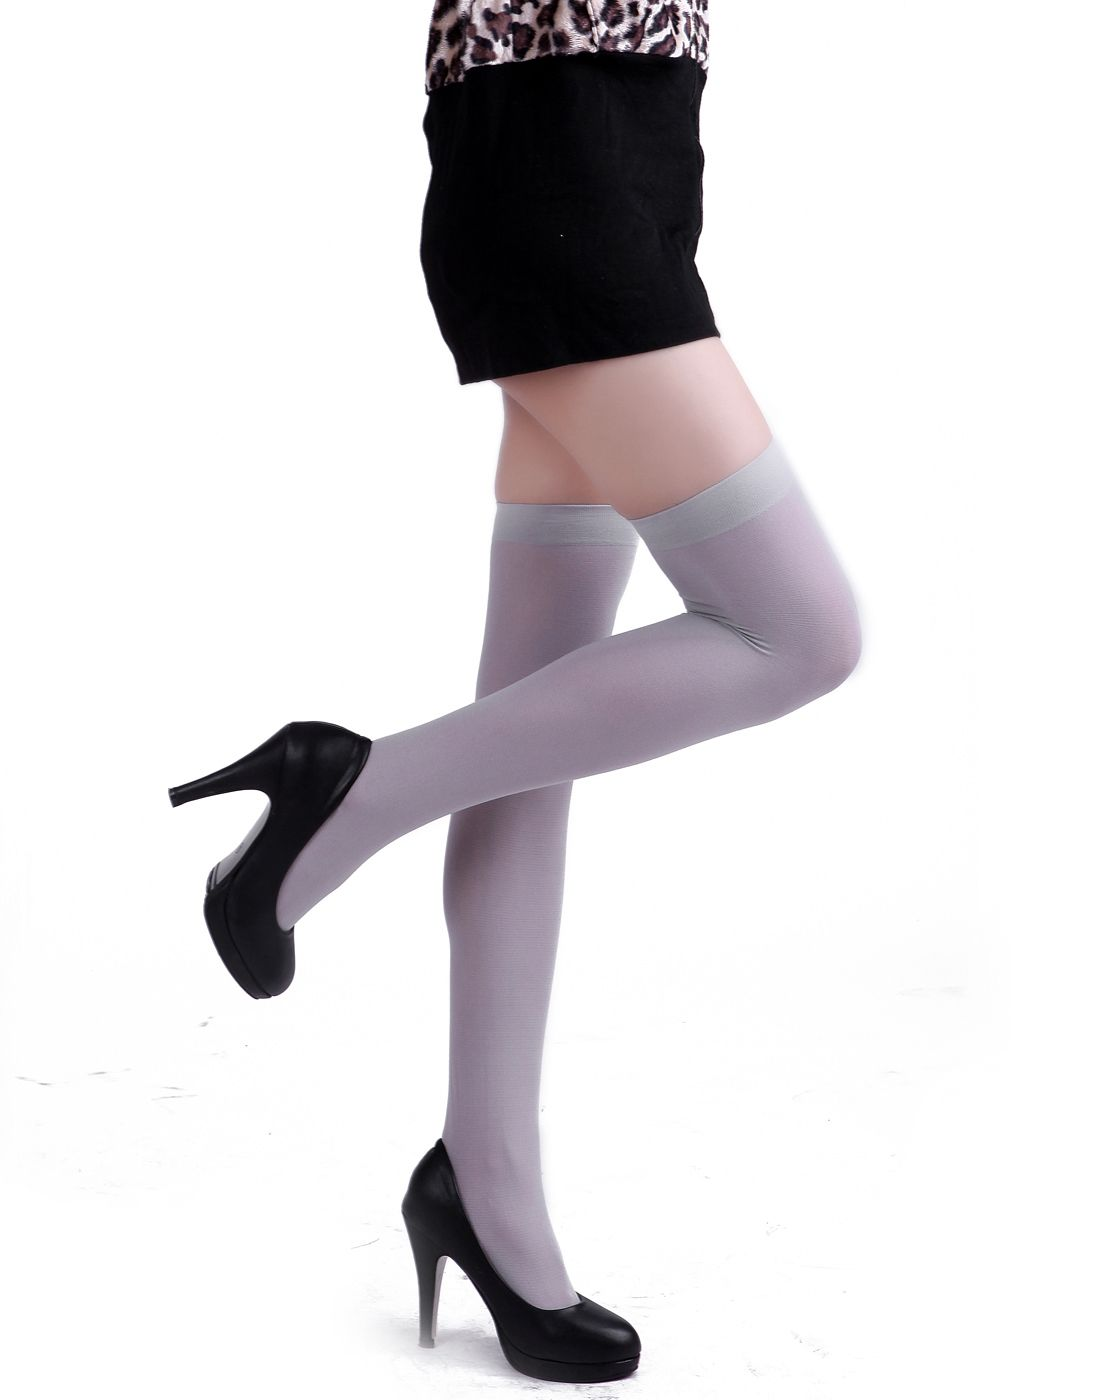 acce9486e3706 HDE Women's Thigh High Stockings S-XL Opaque Tights Over the Knee Nylon  Socks (White)#High, #Stockings, #XL